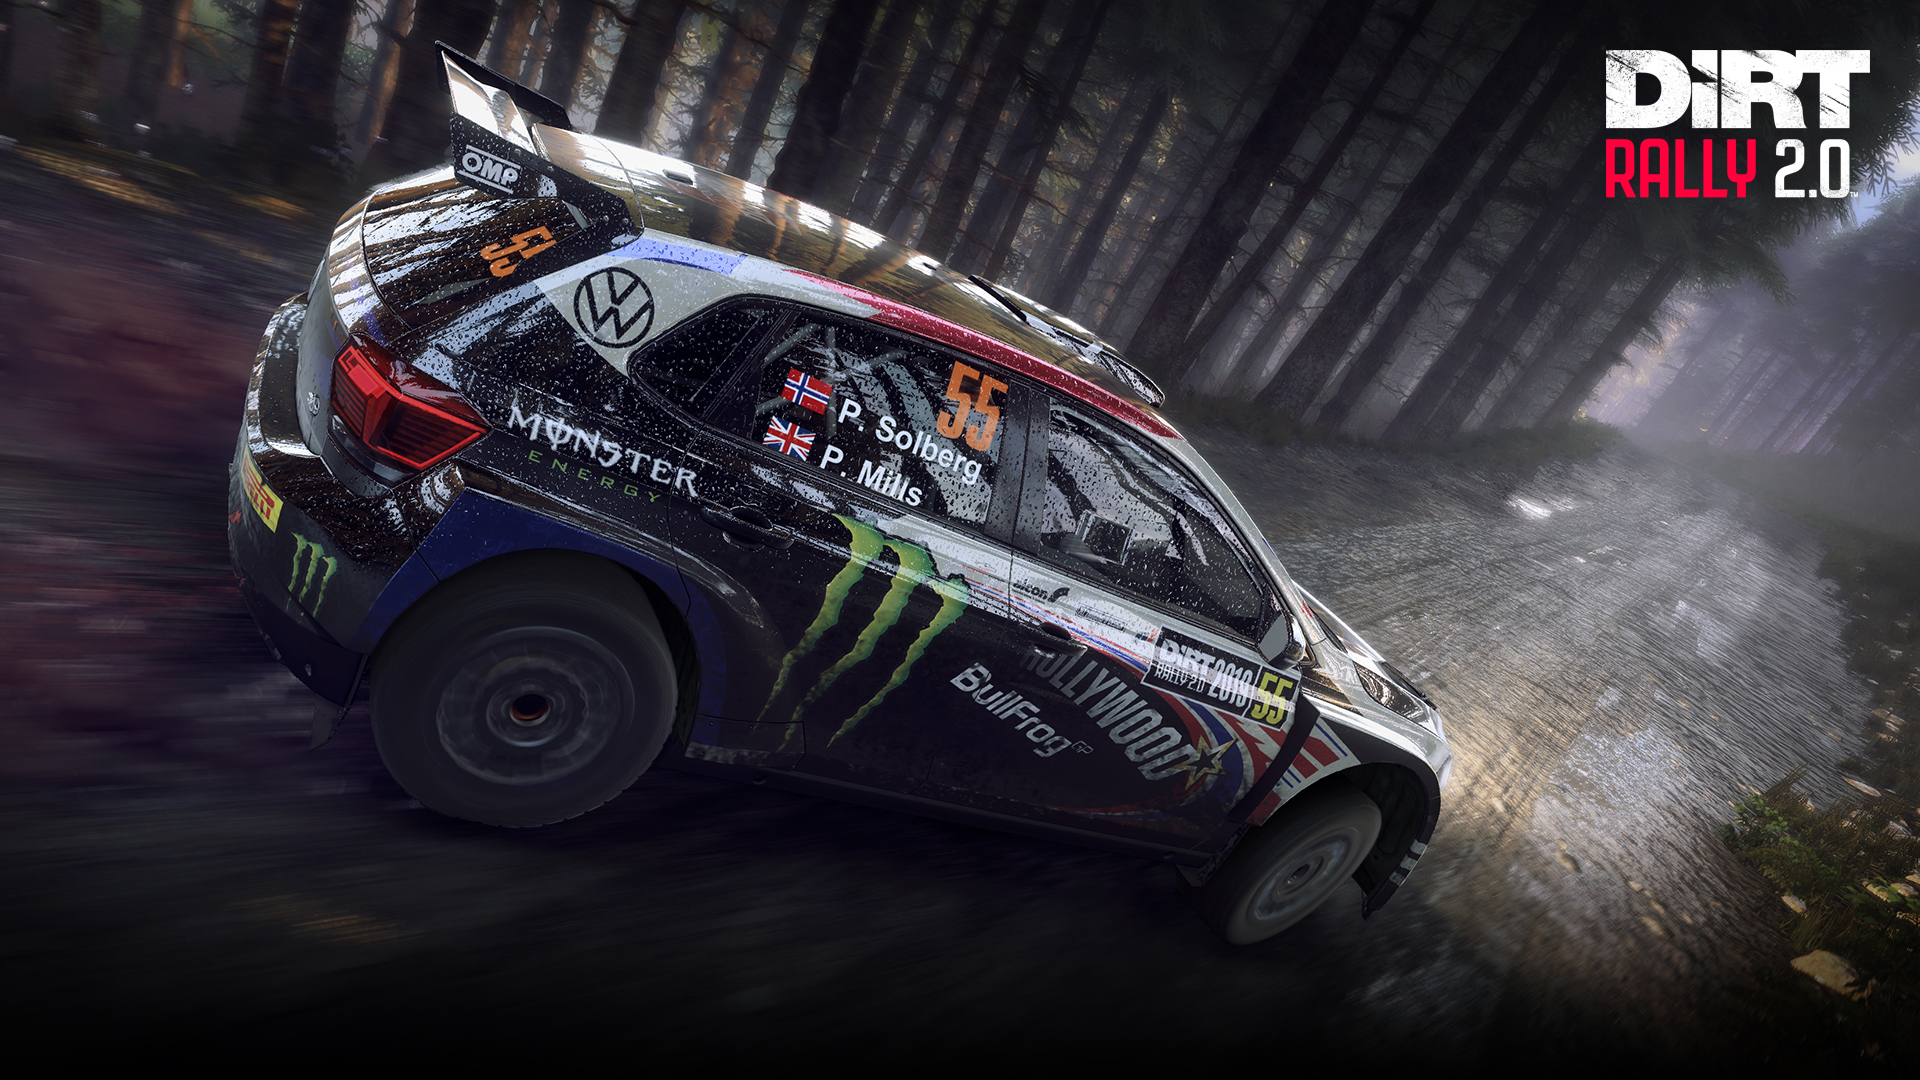 Solberg Livery Challenges – Coming to DiRT Rally 2.0 this January ...